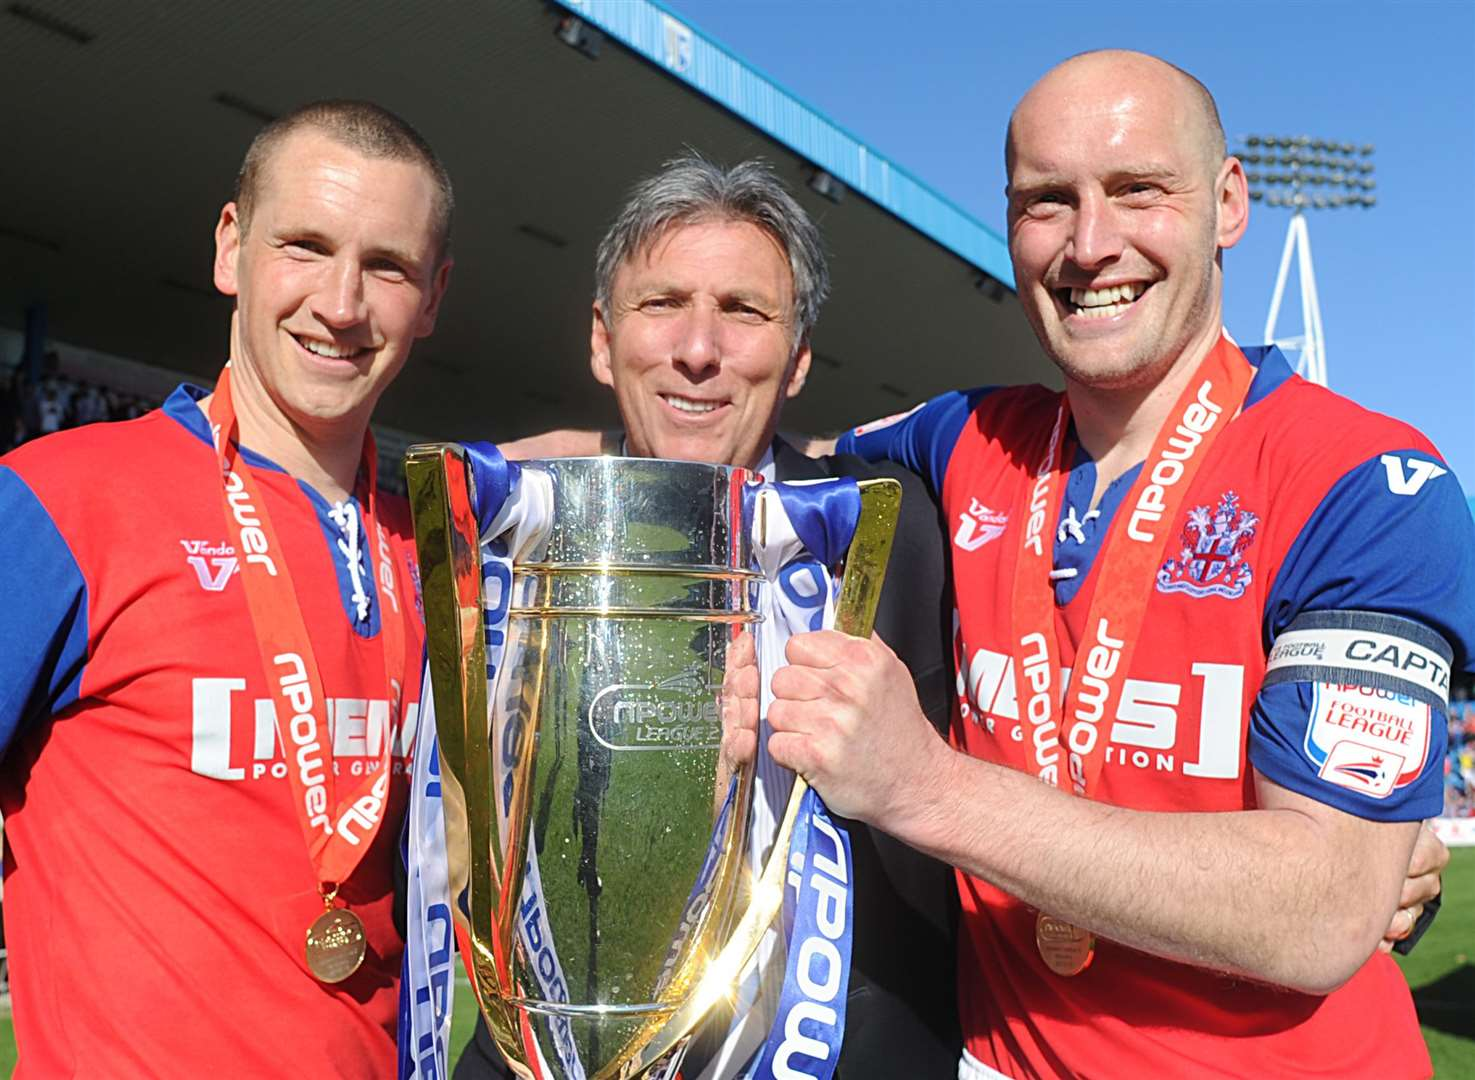 Happier times as Michael Anderson celebrates Gills winning the League 2 title in 2012/13 with Andy Frampton and Adam Barrett. Picture: Barry Goodwin